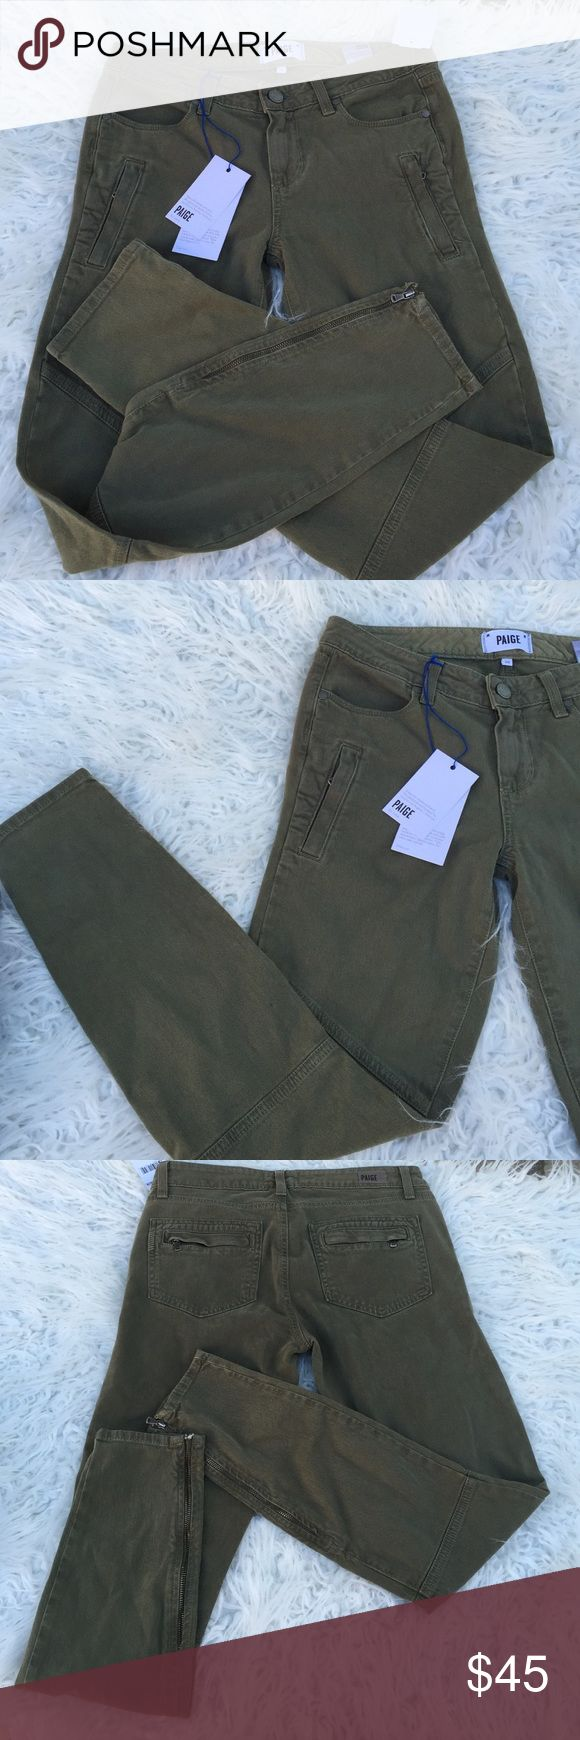 Paige jeans fatigue green Fatigue jeans. On sale due to the defect on the left foot zipper that needs repair. Very cute and stylish. Retail:178.00 Paige Jeans Jeans Ankle & Cropped